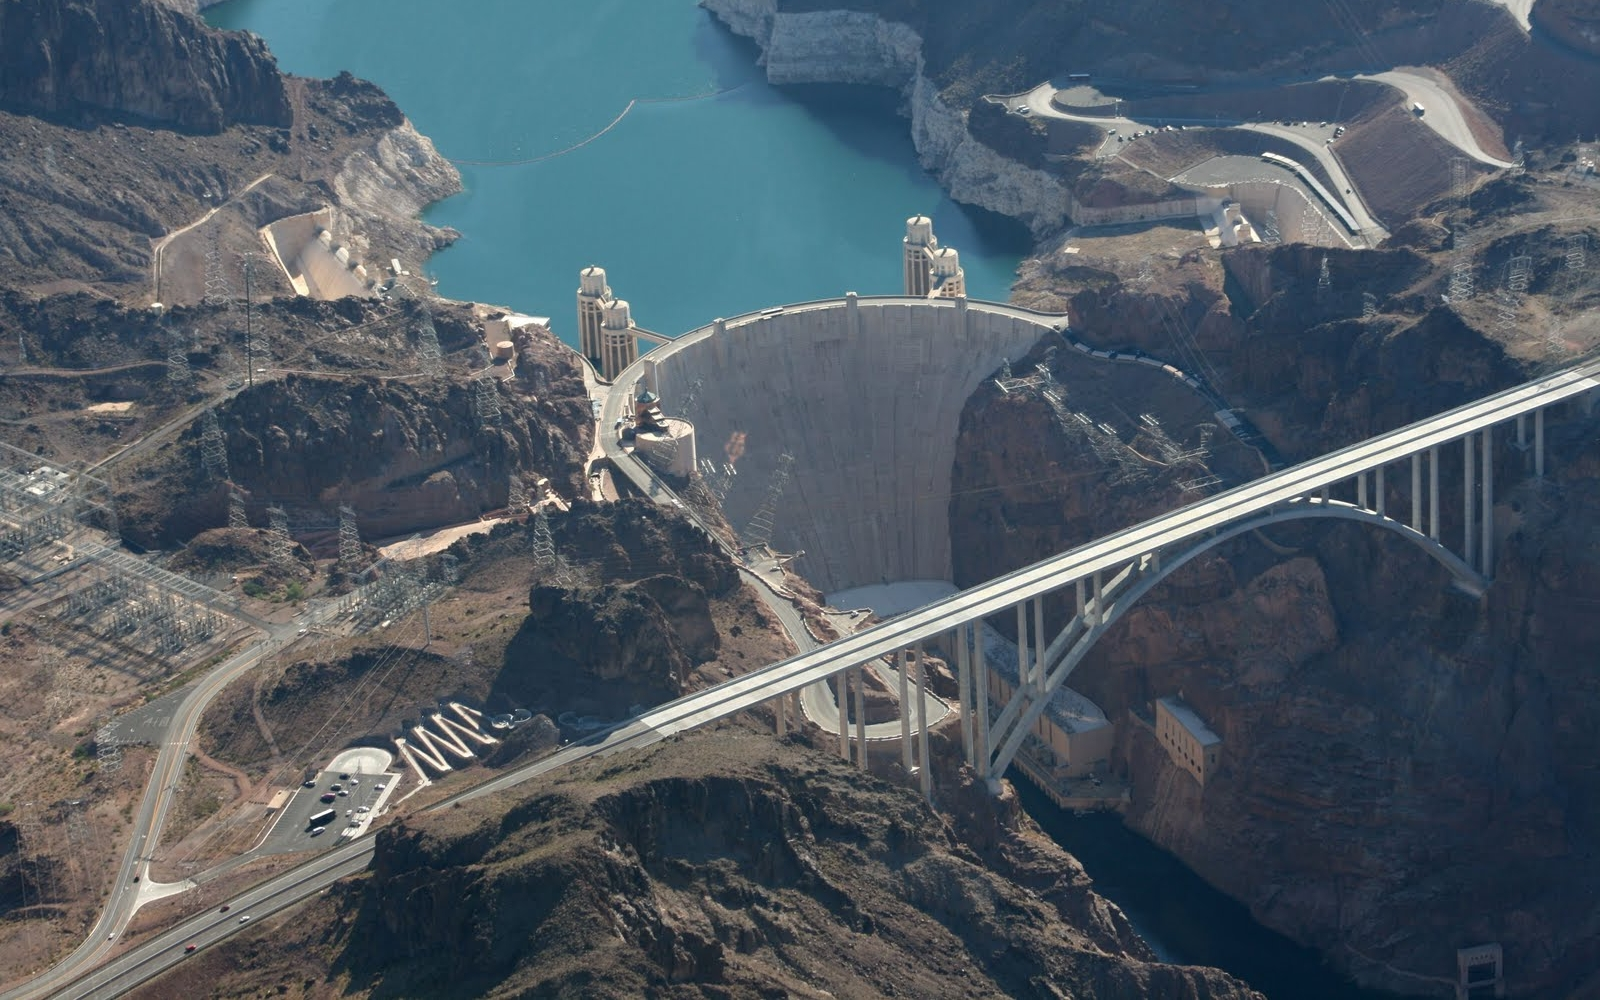 Hoover Dam Wallpaper and Background Image 1600x1000 ID417174 1600x1000